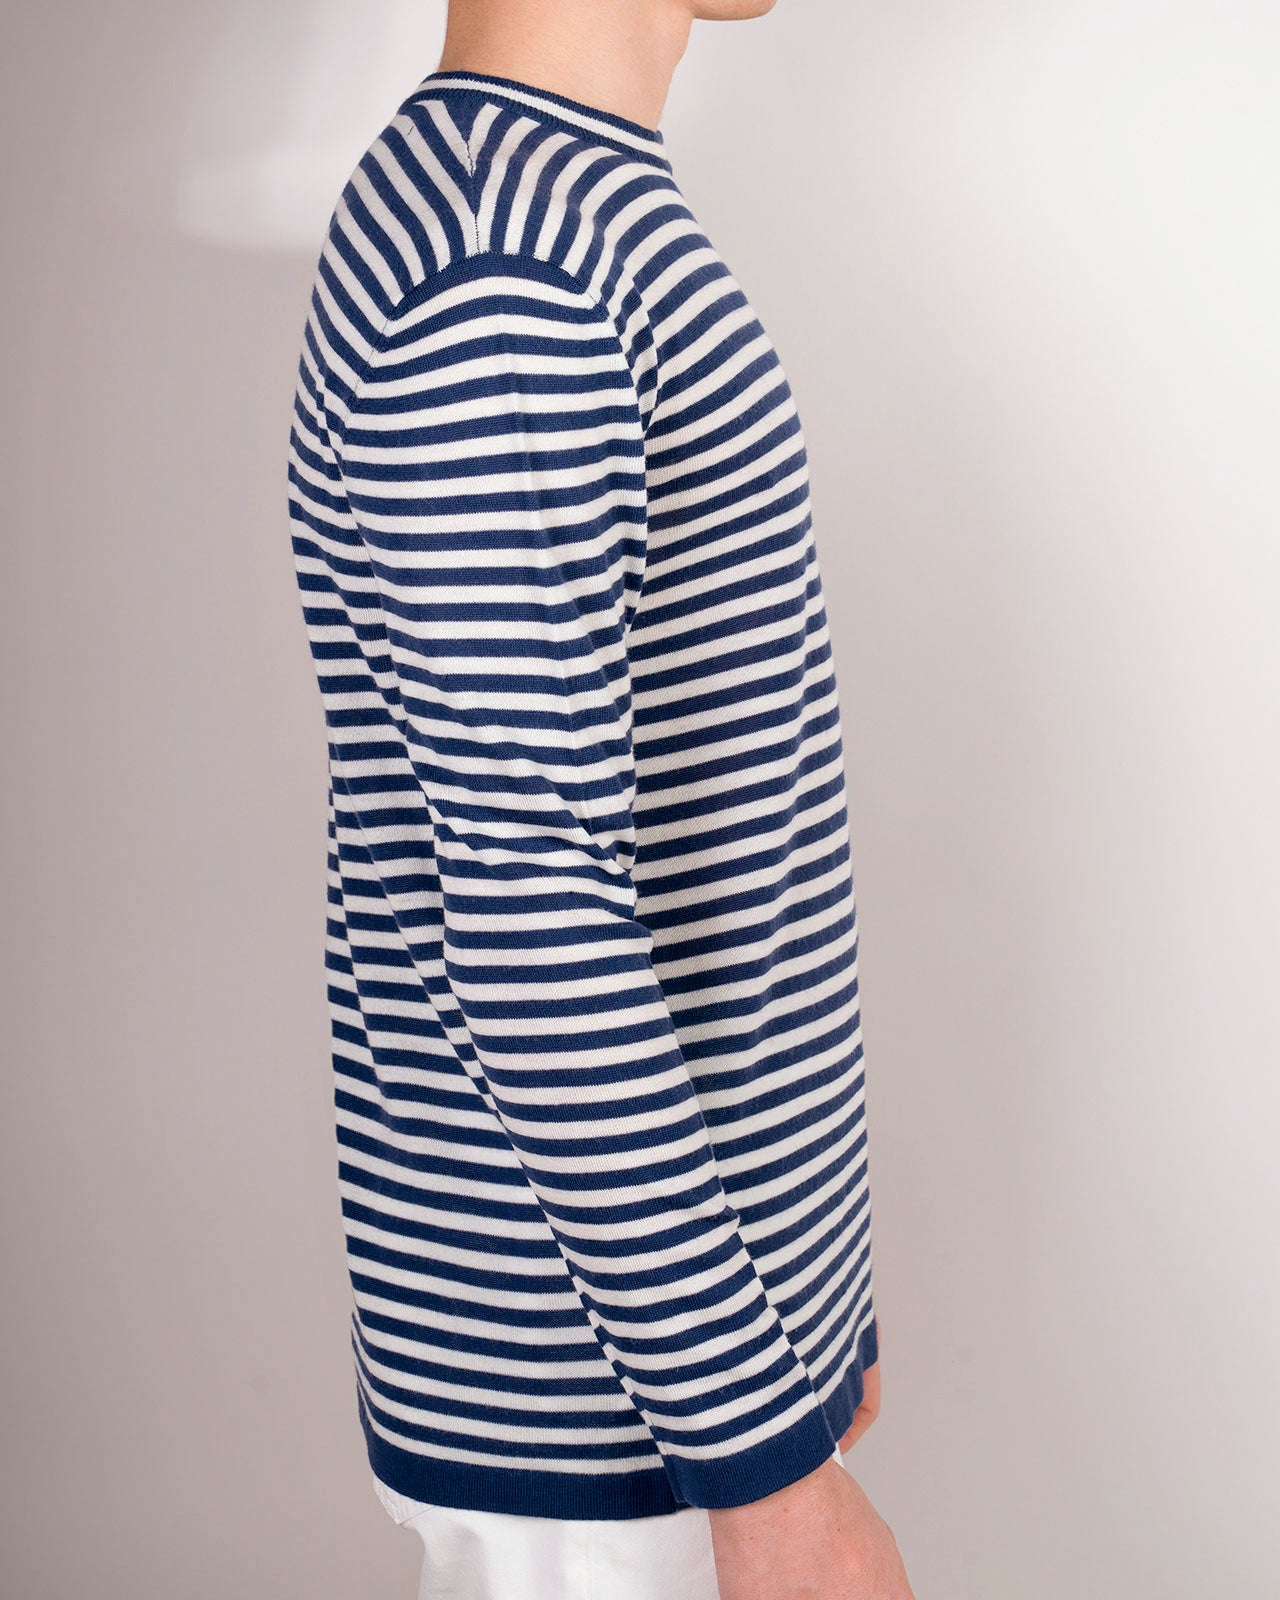 MACERATA LIGHTWEIGHT BLUE-WHITE STRIPED CREW